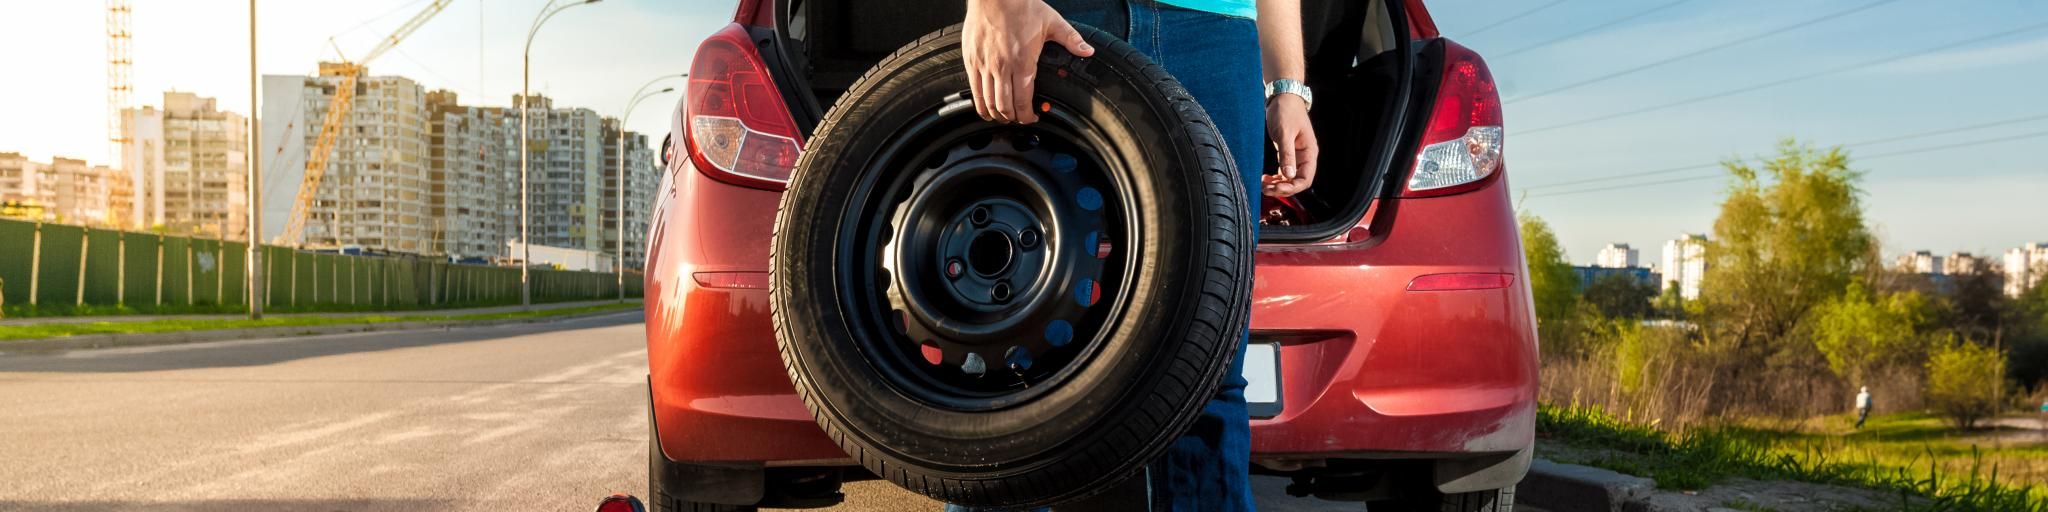 Man suffered a puncture and needs to know how fast can you drive on a spare tire.